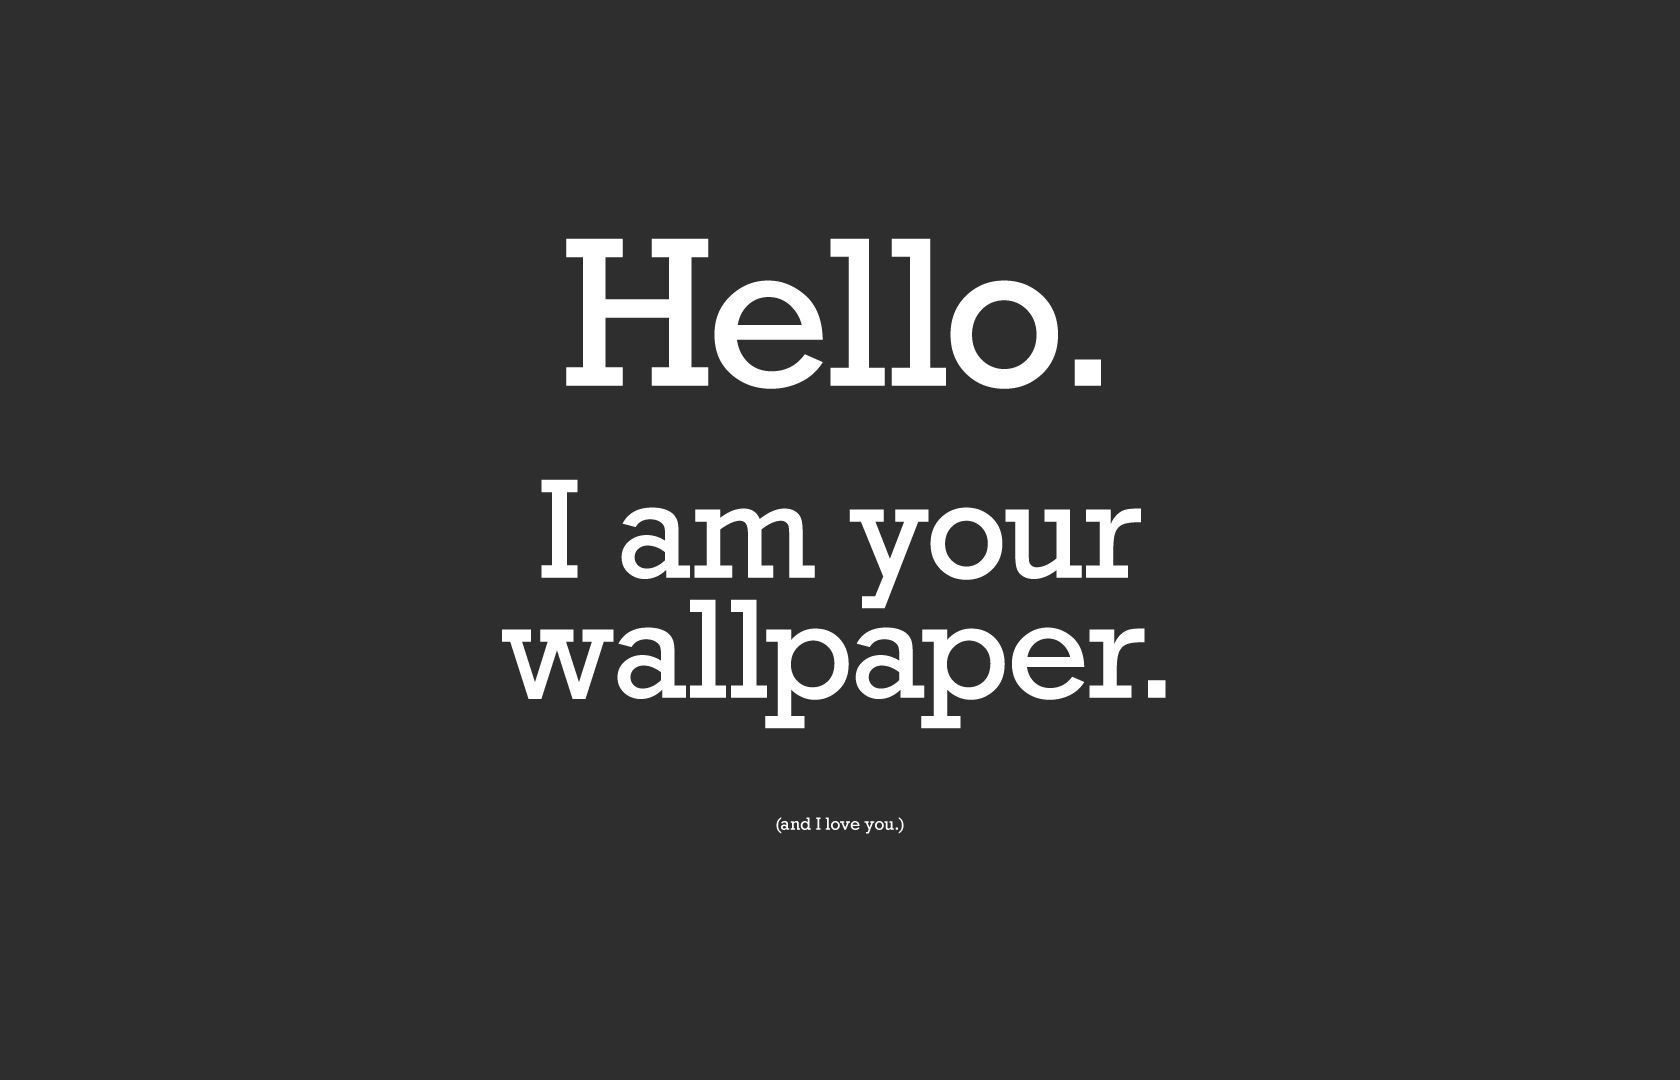 Memes For Funny Wallpapers With Quotes Funny Quotes Wallpaper Funny Phone Wallpaper Cute Wallpapers Quotes